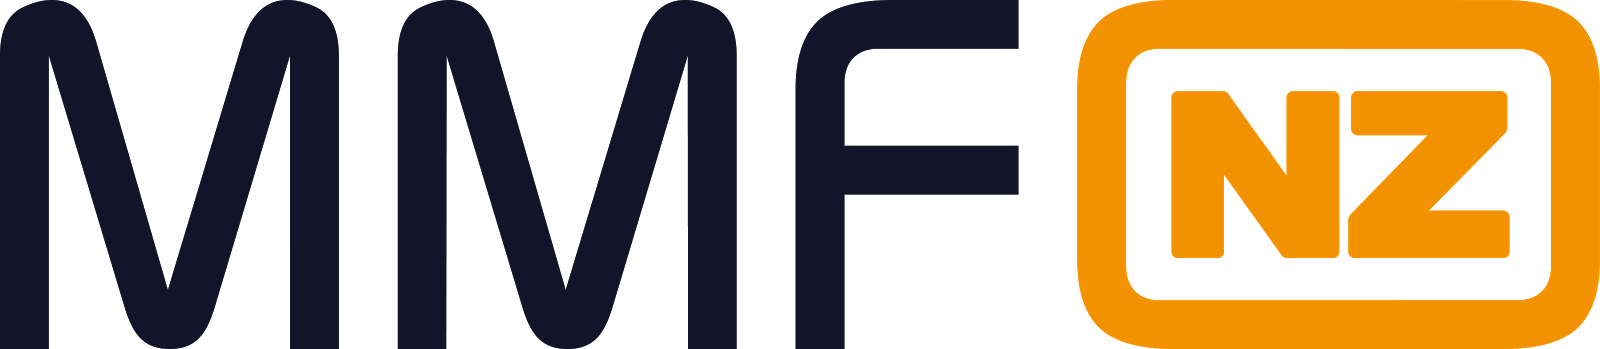 New MMF logo reversed.png